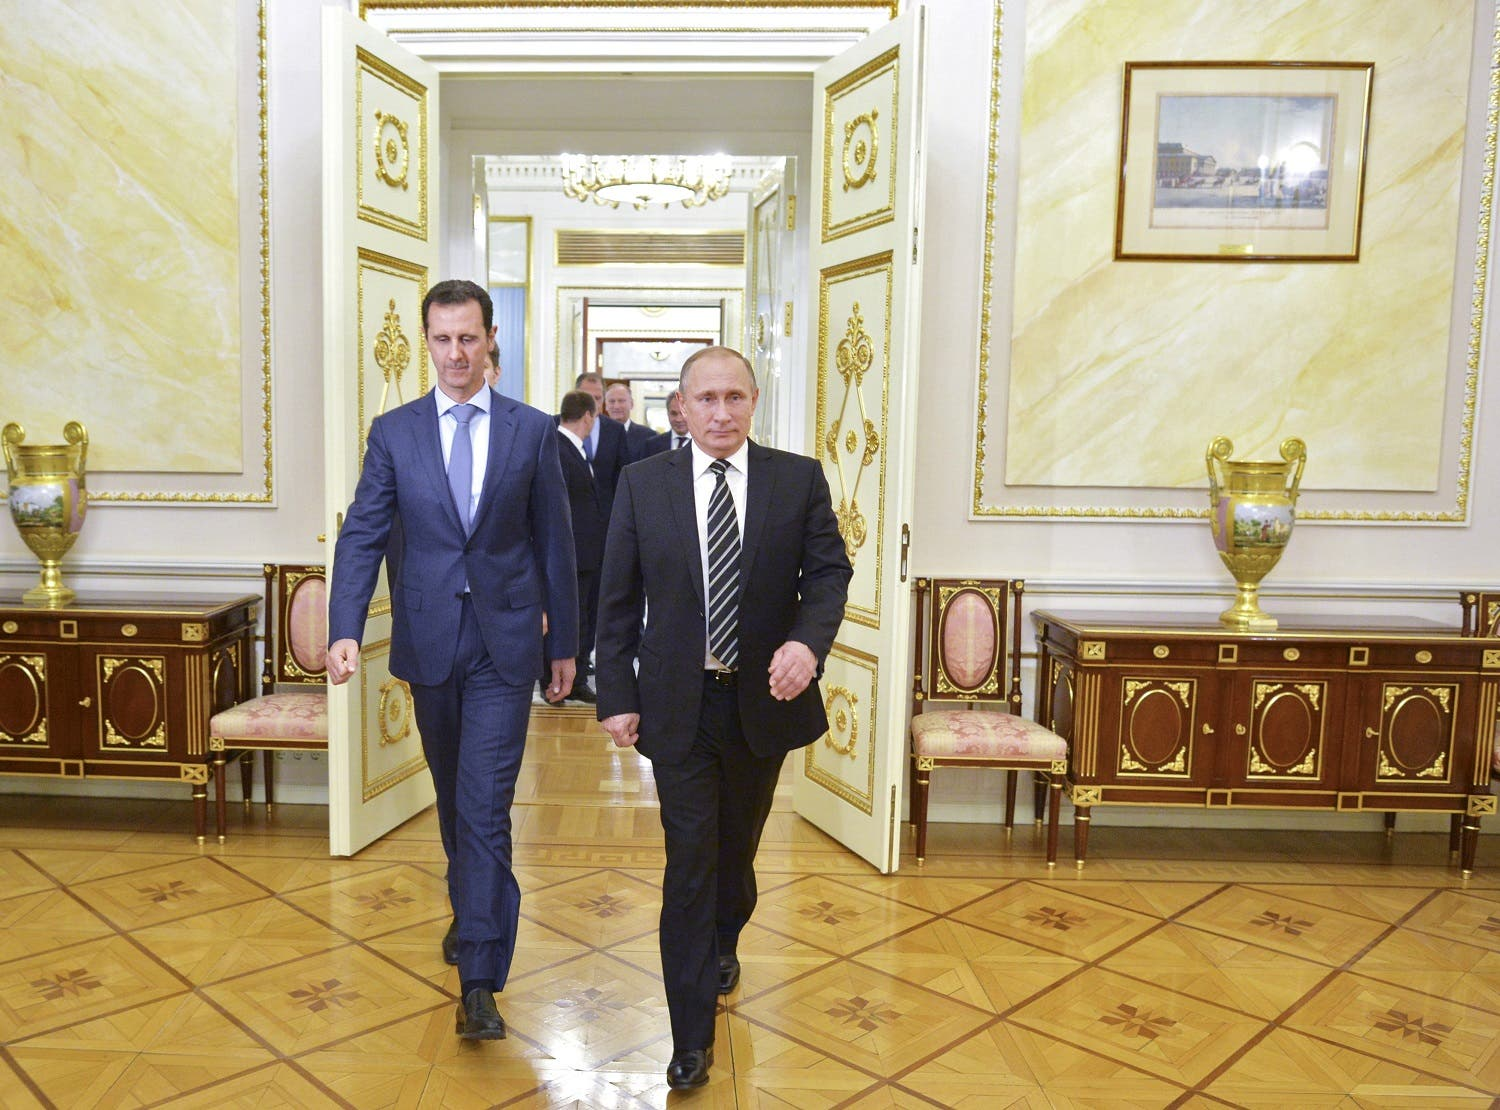 Russian President Vladimir Putin (R) and Syrian President Bashar al-Assad enter a hall during a meeting at the Kremlin in Moscow, Russia, October 20, 2015. To match INSIGHT MIDEAST-CRISIS/SYRIA-ALEPPO-FALL Alexei Druzhinin/RIA Novosti/Kremlin/via REUTERS/File Photo ATTENTION EDITORS - THIS IMAGE HAS BEEN SUPPLIED BY A THIRD PARTY. Reuters